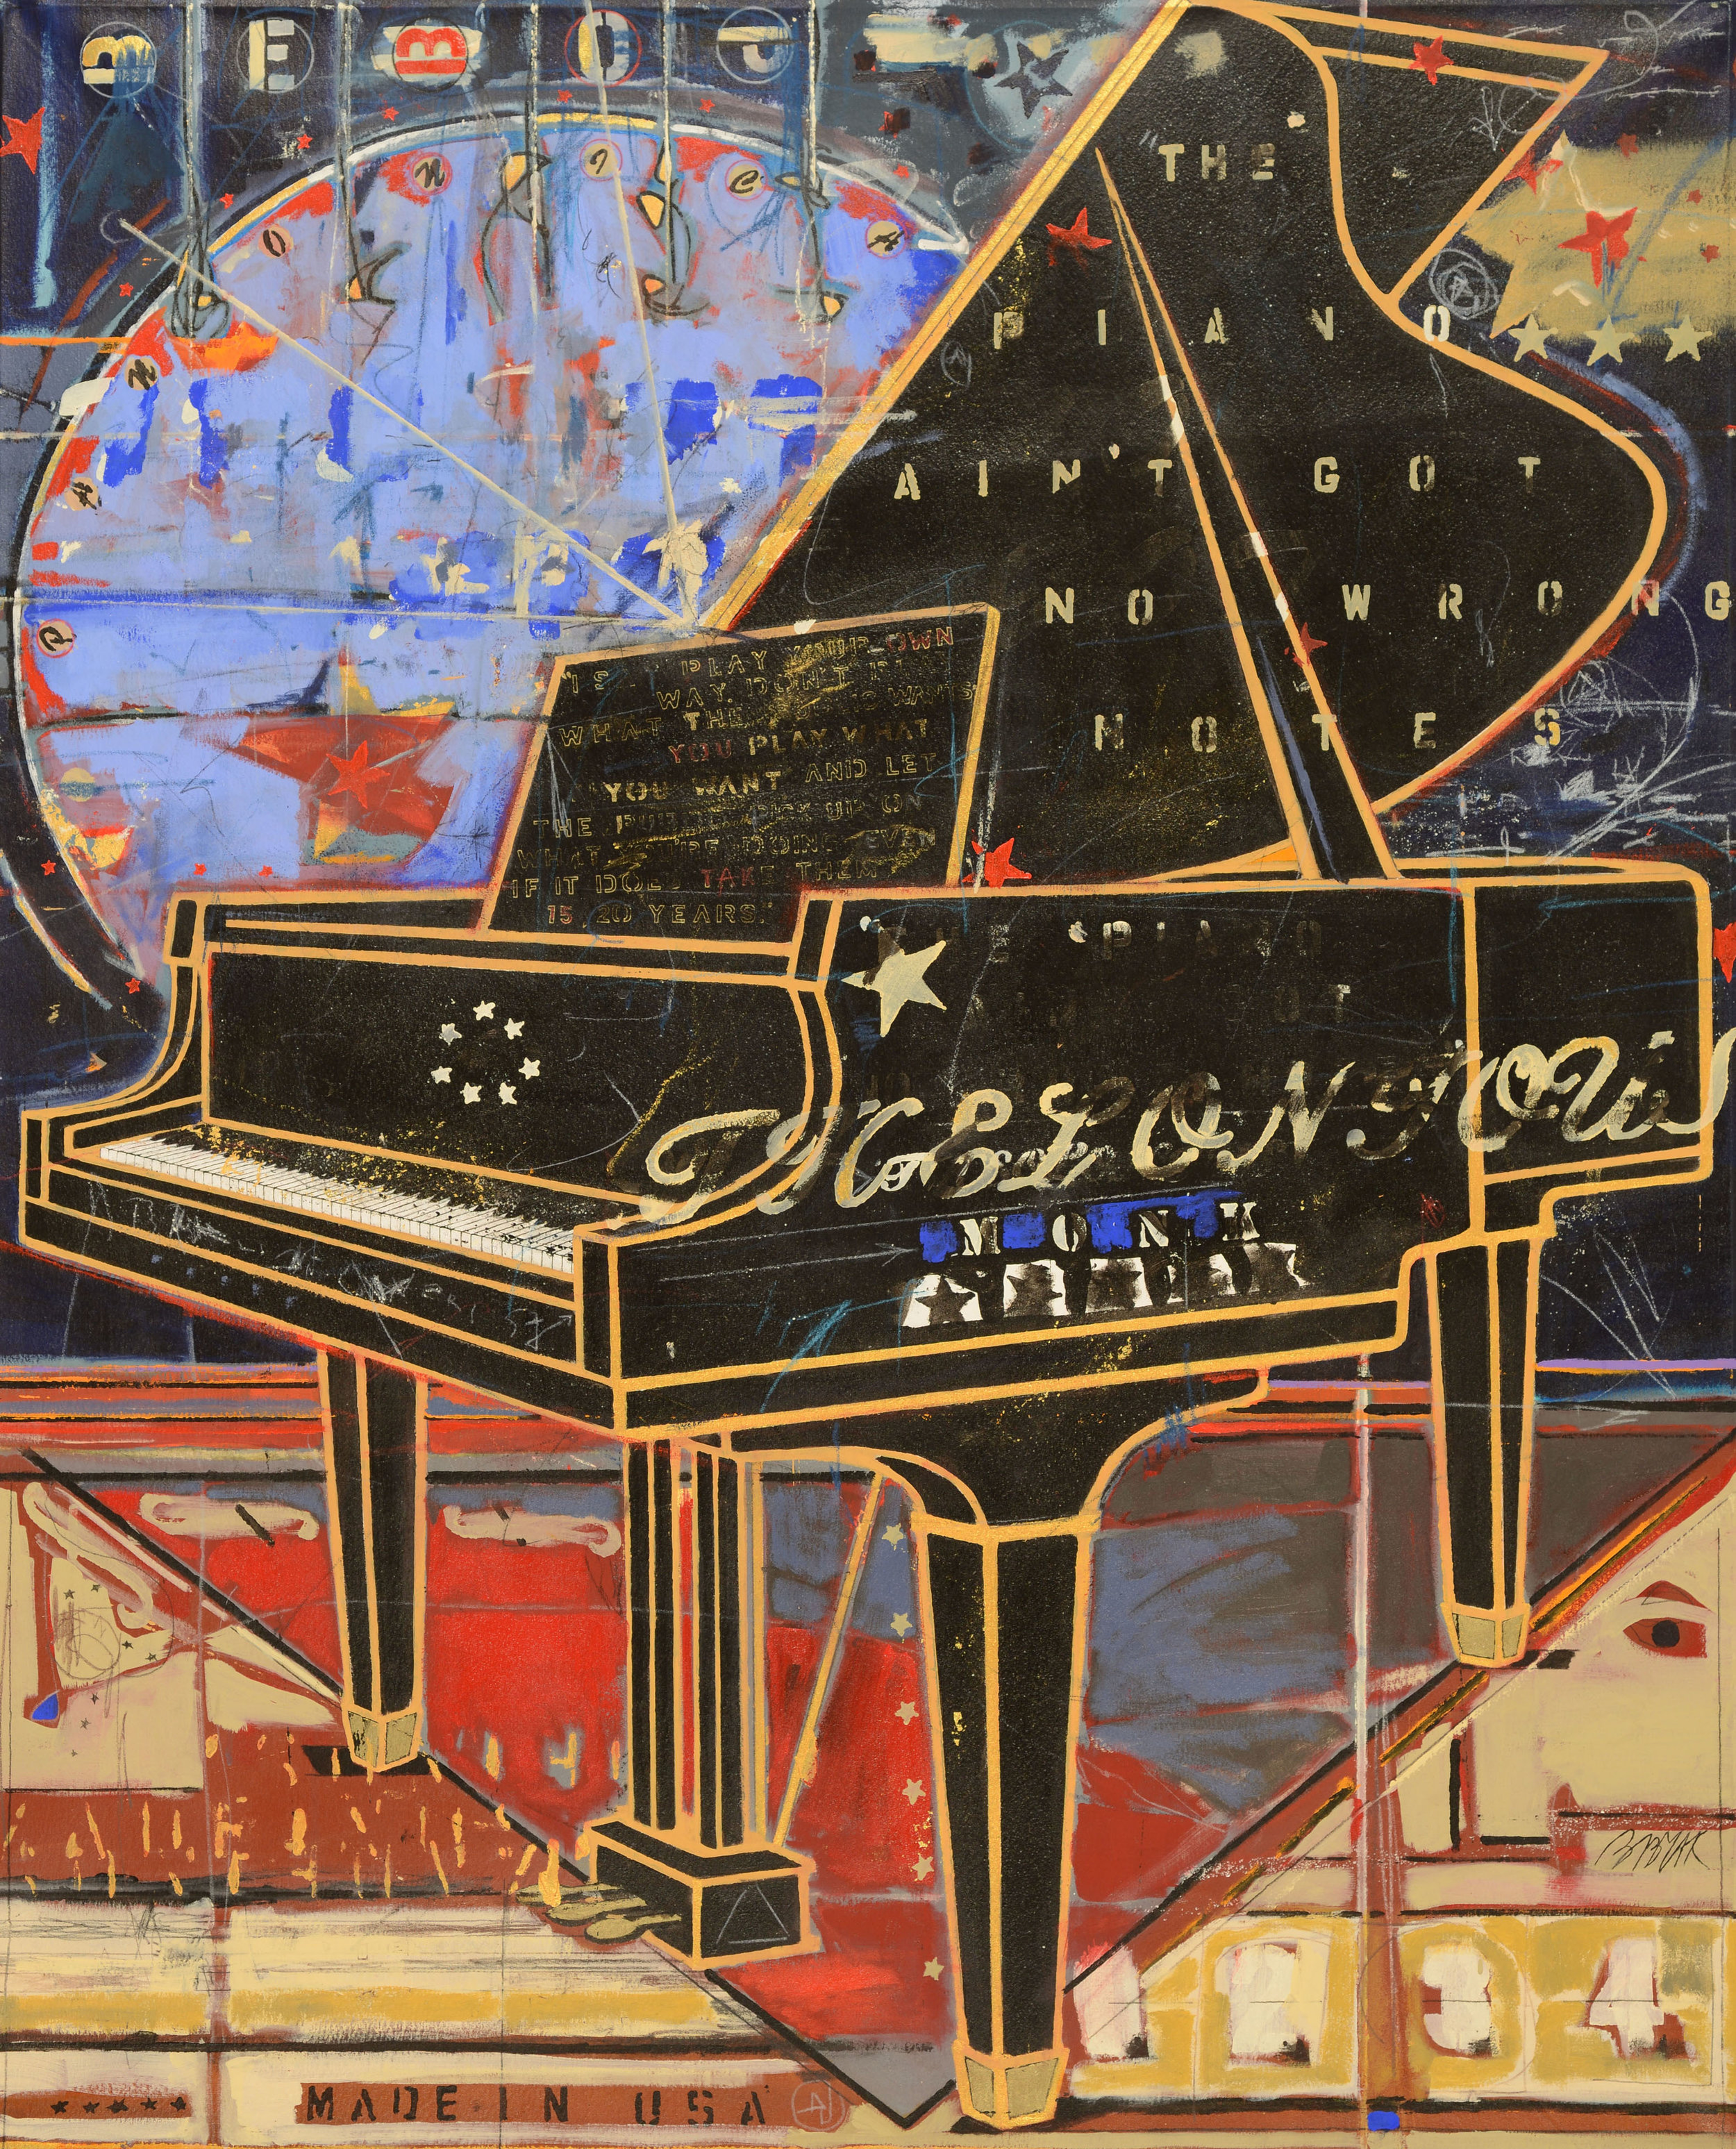 Piano Ain't Got No Wrong Notes  • 62 X 50 • acrylic, graphite, glitter, 24K gold leaf on canvas